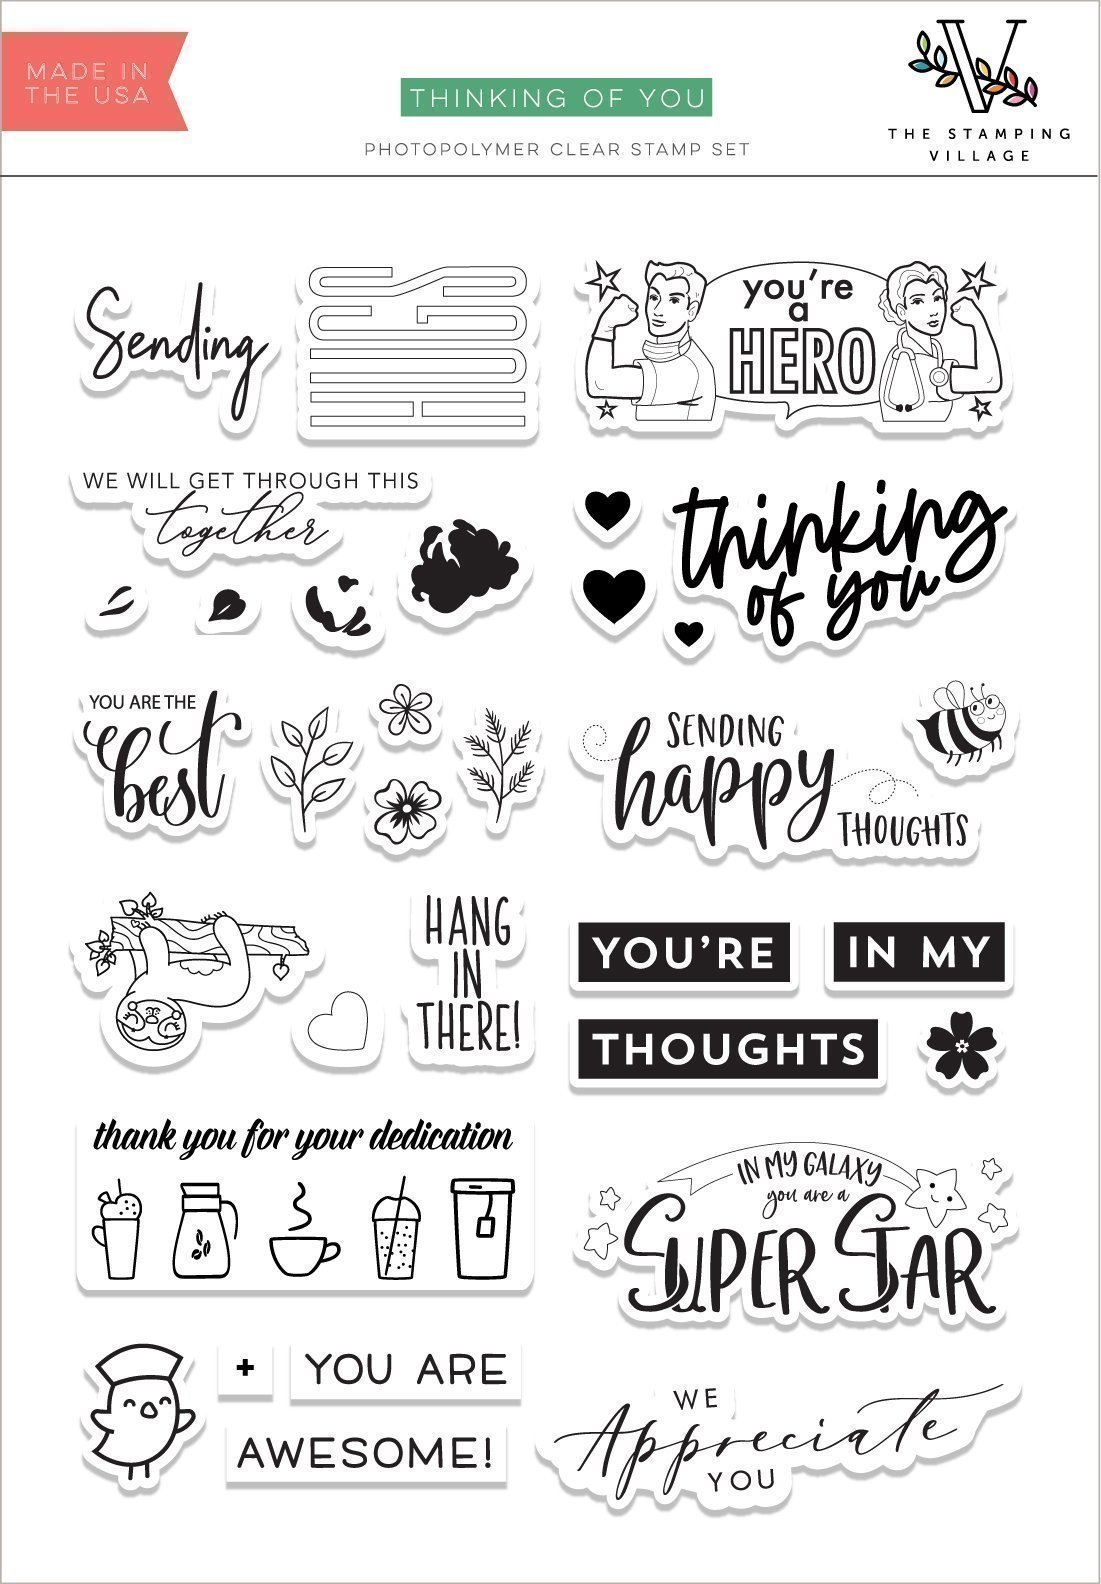 The Stamping Village: Thinking of You Stamp Set